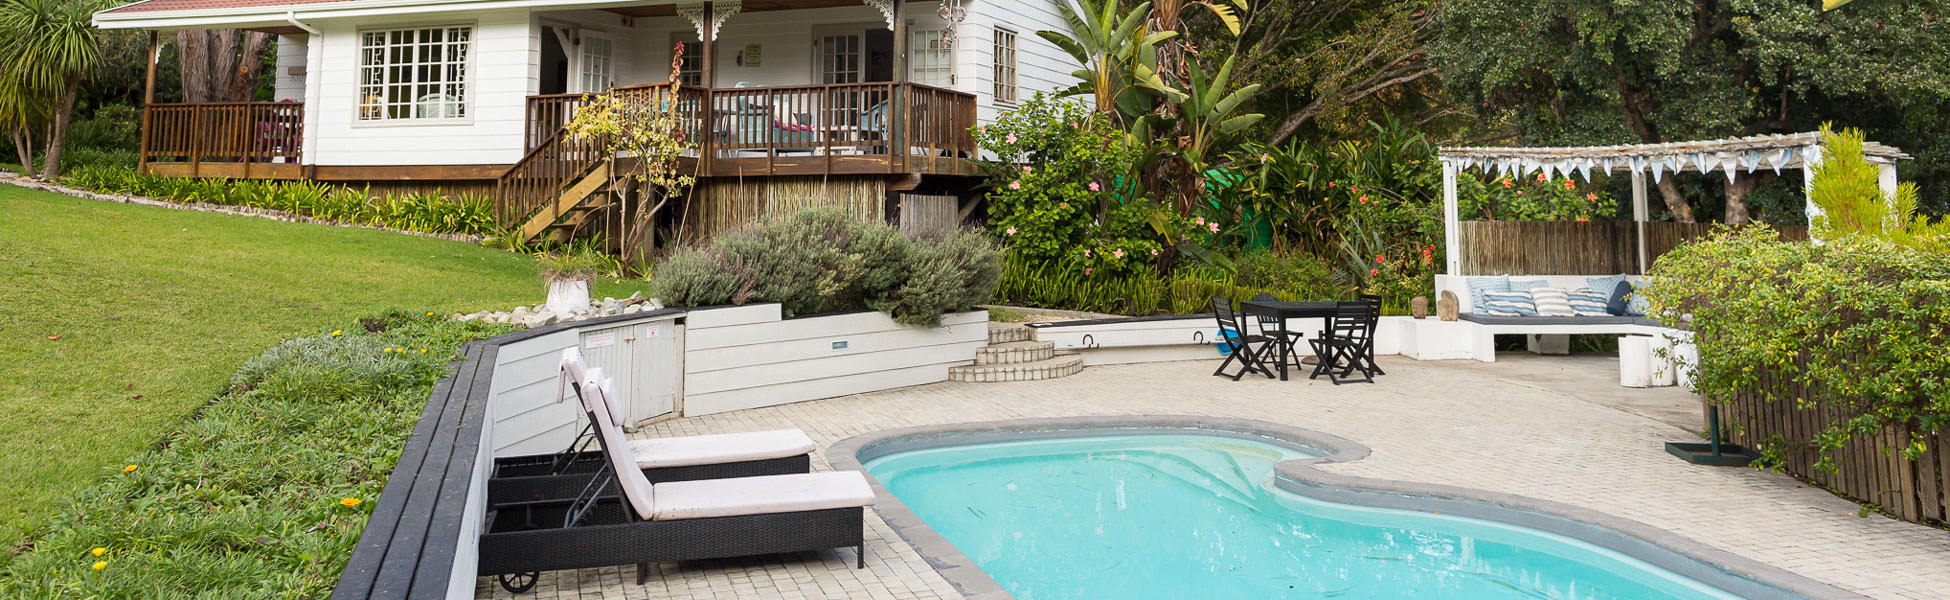 Stannards Guest House - Luxury accommodation in Knysna